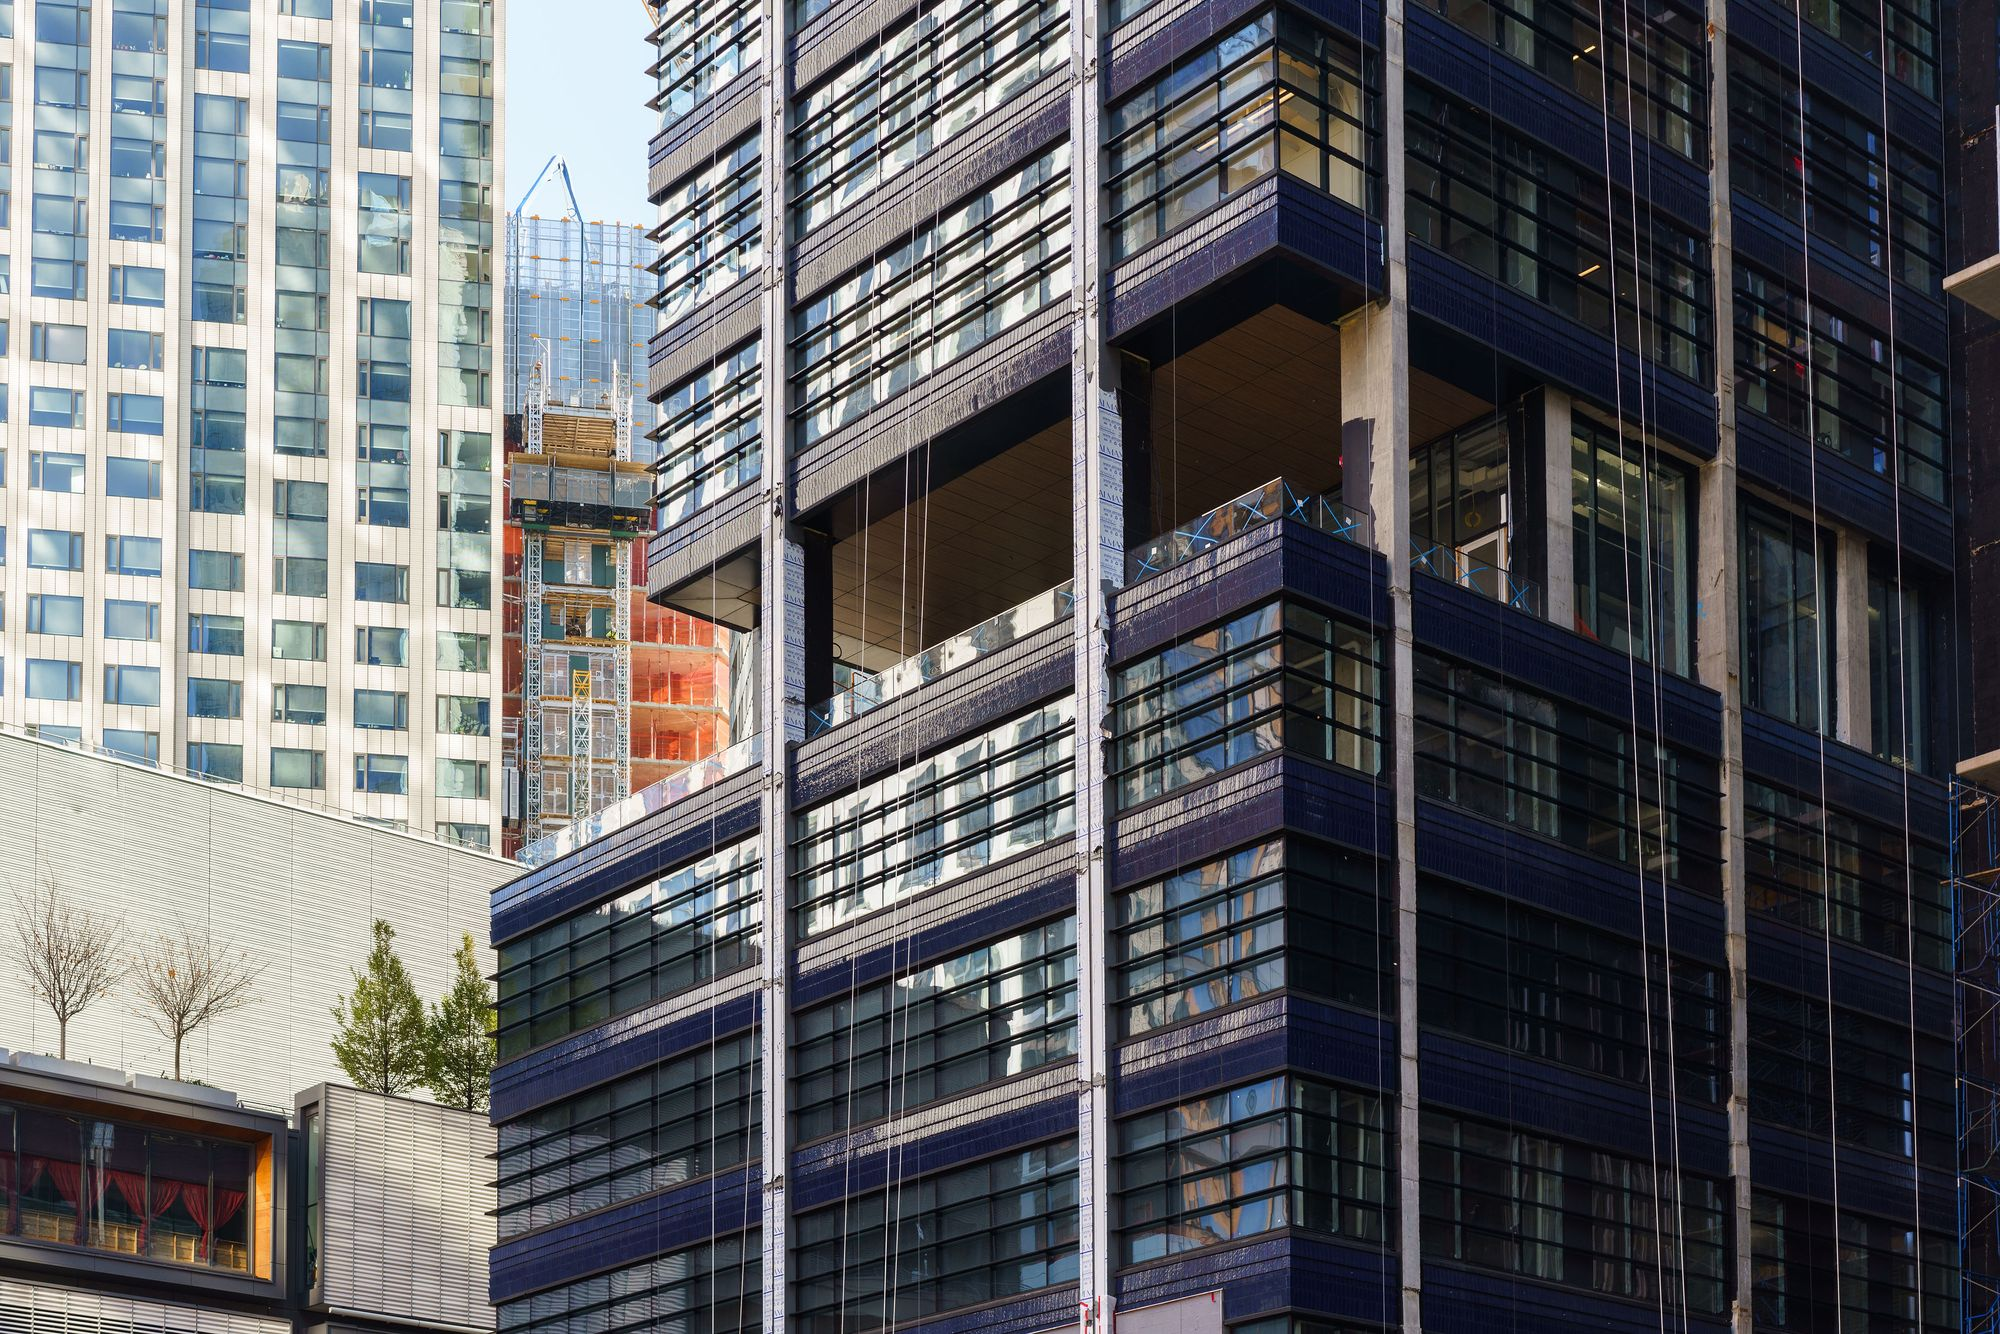 1 Willoughby Square, Downtown Brooklyn's Tallest Office Tower, Is Open